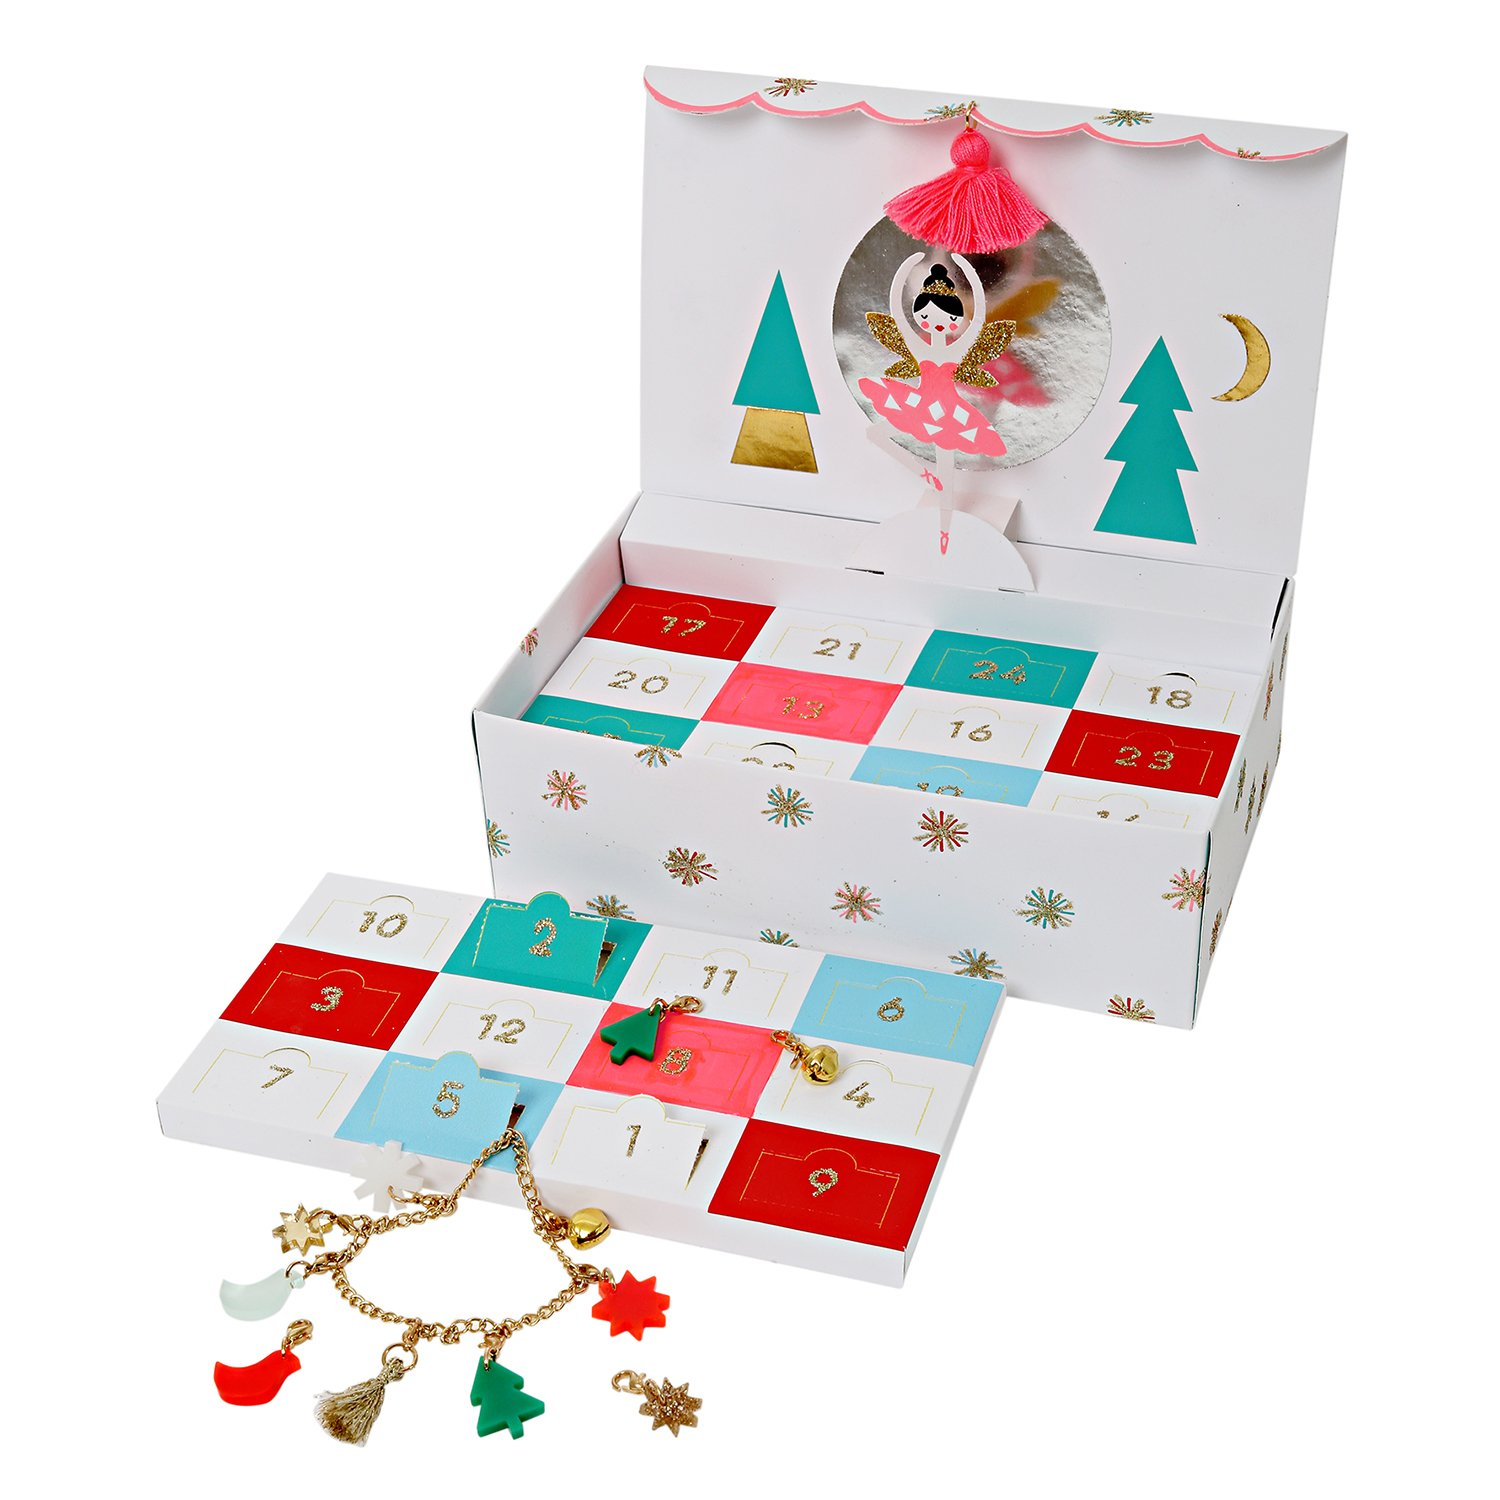 nutcracker jewellery advent calendar gifts for her